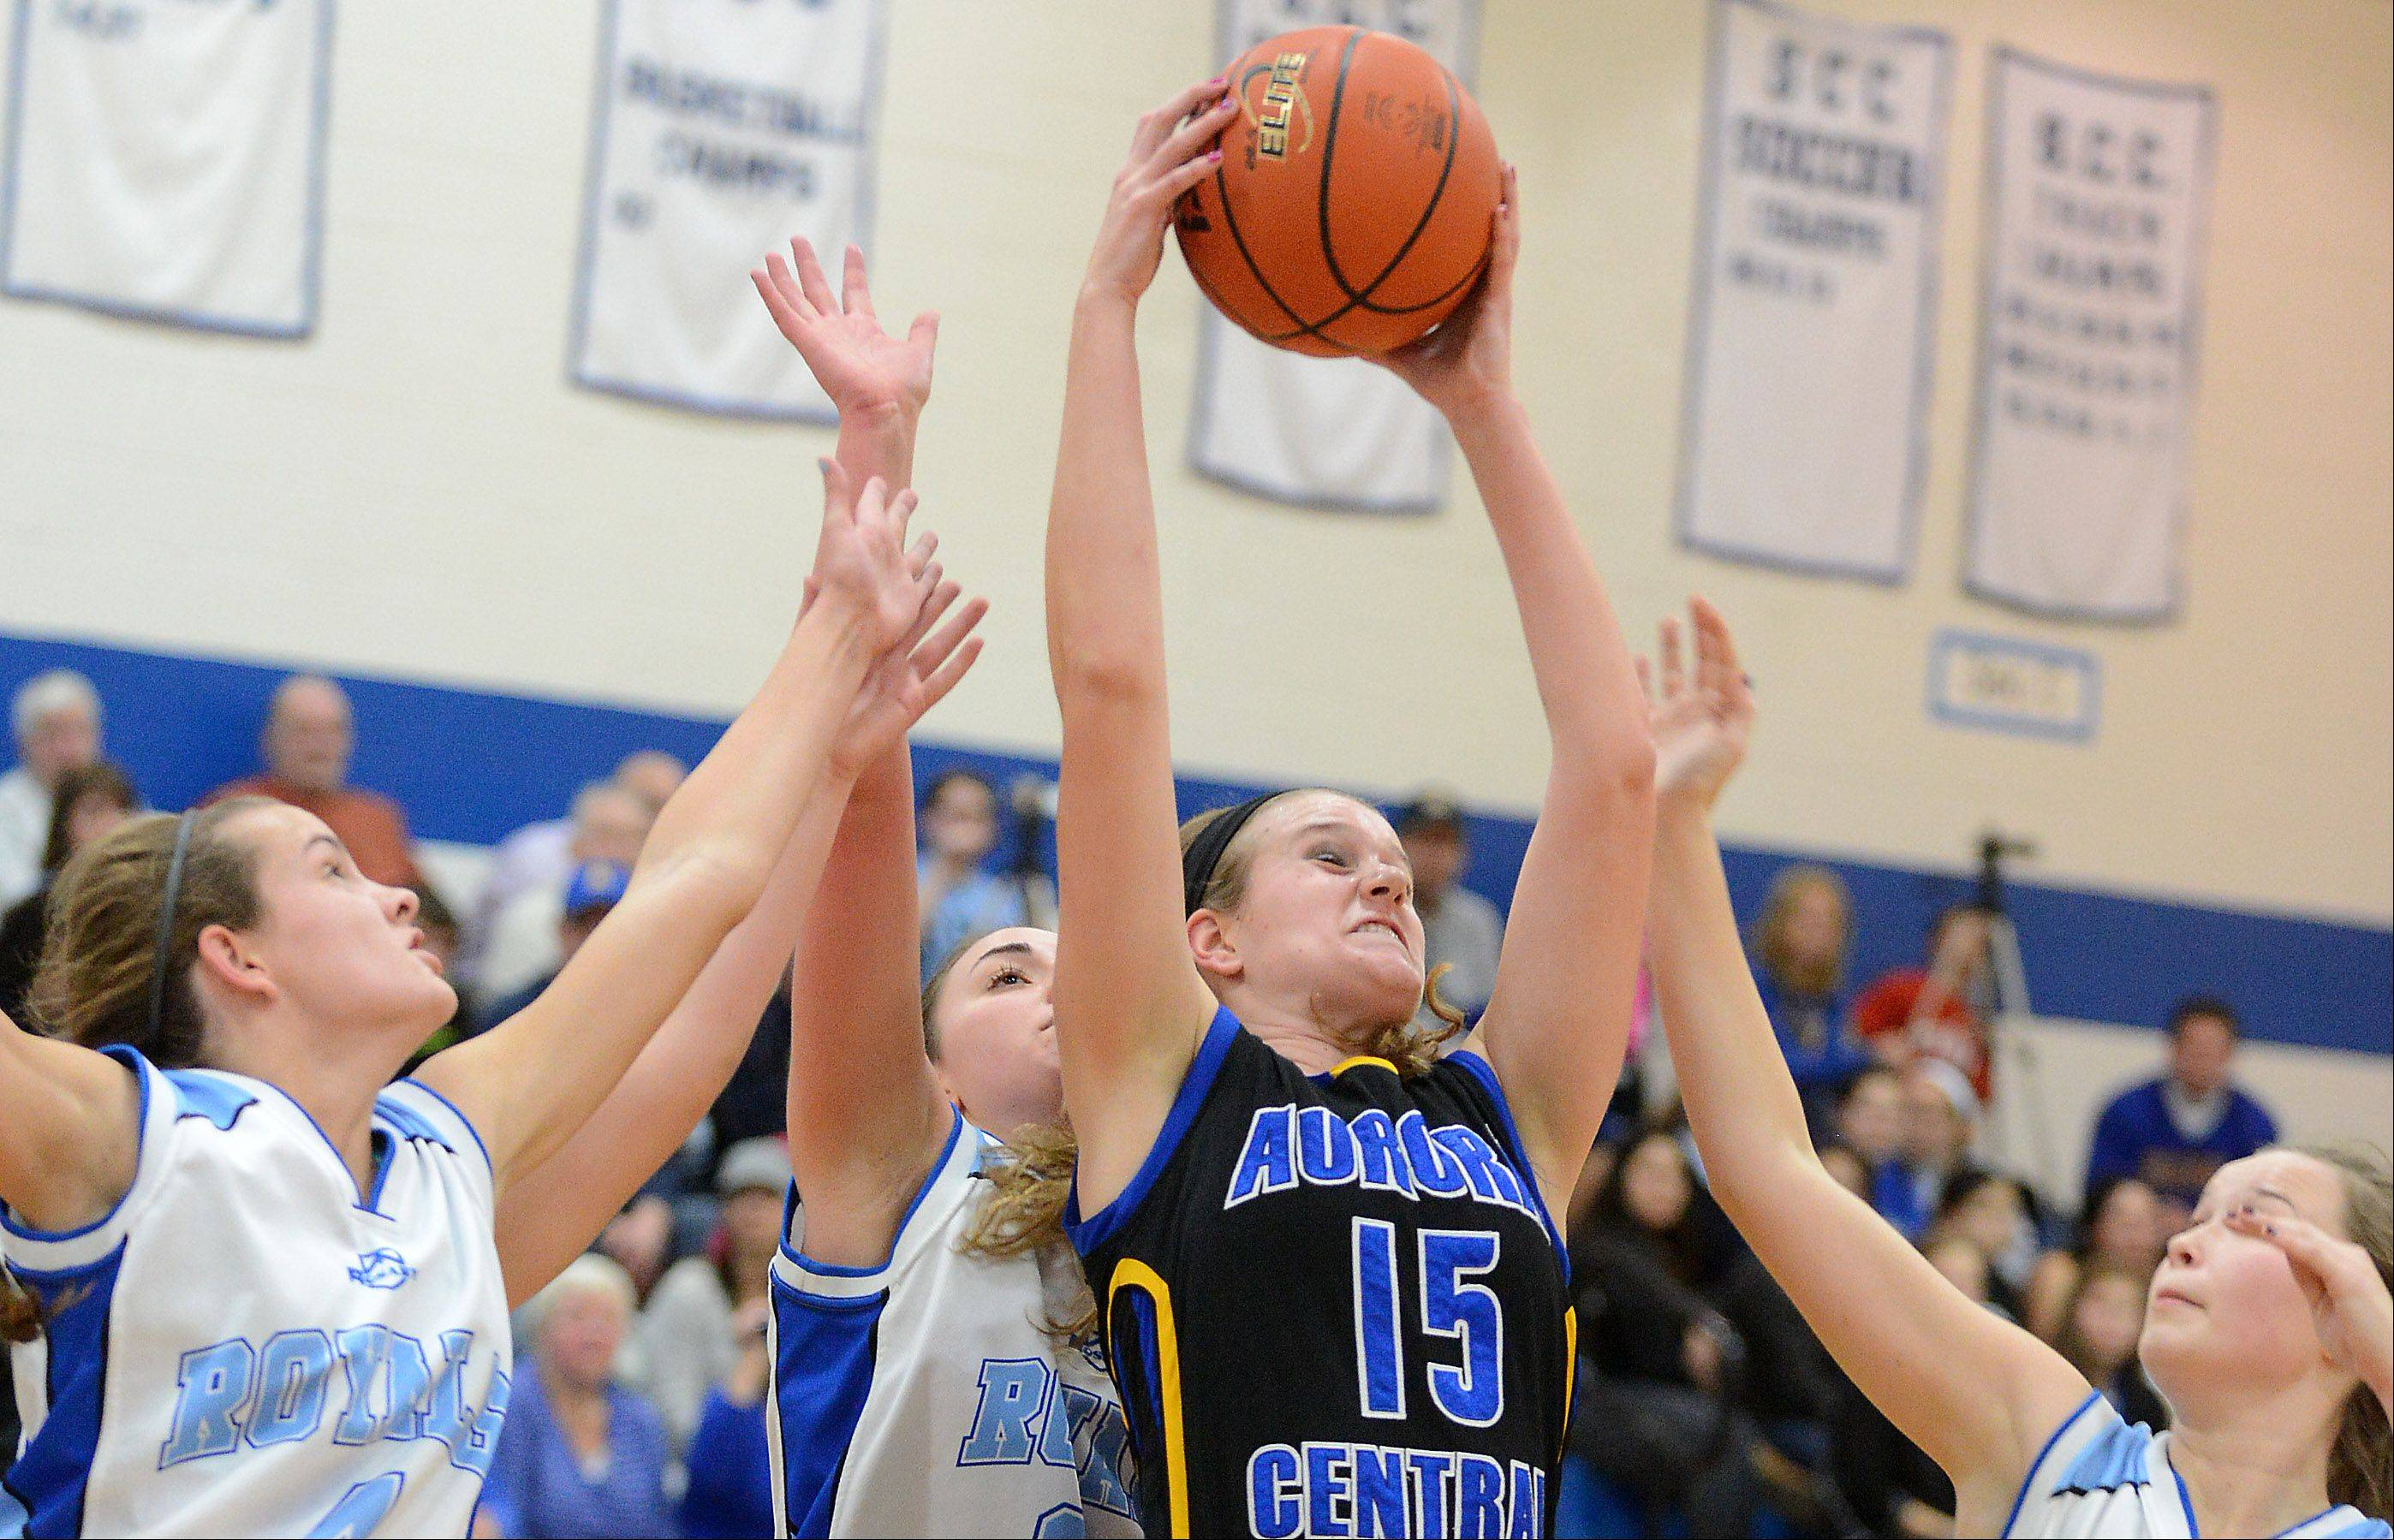 Aurora Central Catholic�s Natalie Droeske pulls down a rebound while surrounded by Rosary players.